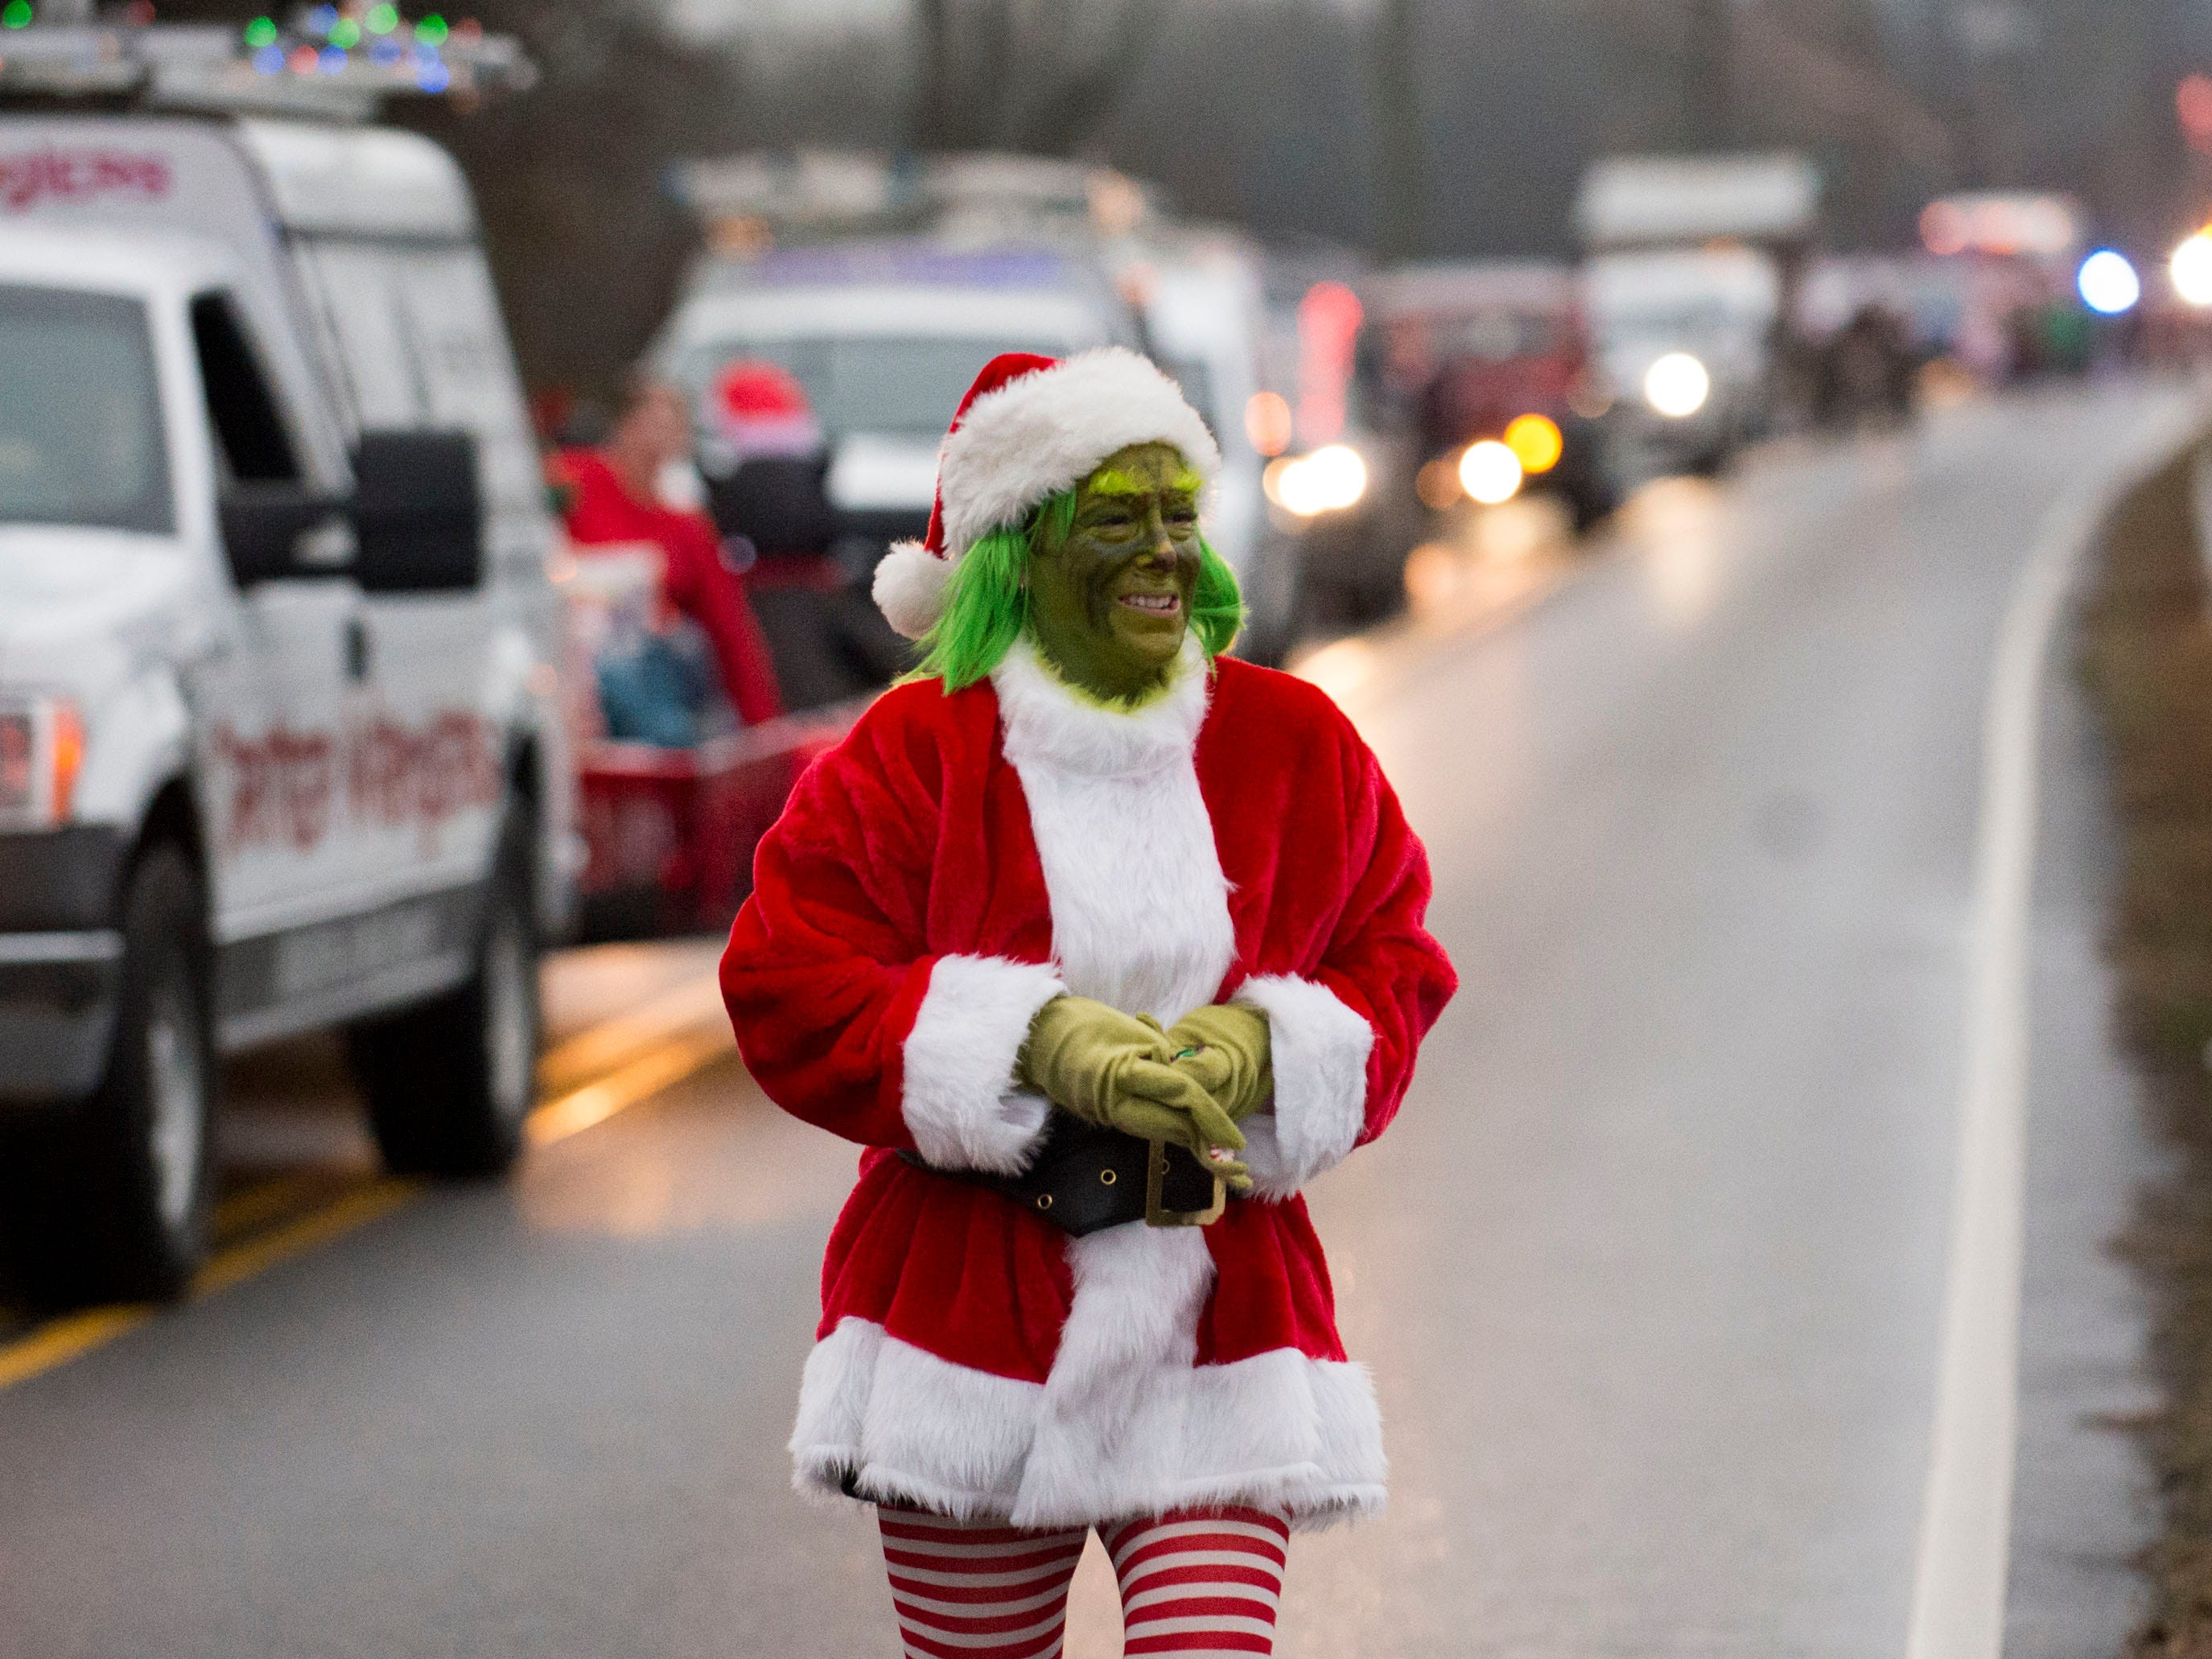 The Grinch in the Powell Lions Club Christmas Parade on Saturday, December 1, 2018.